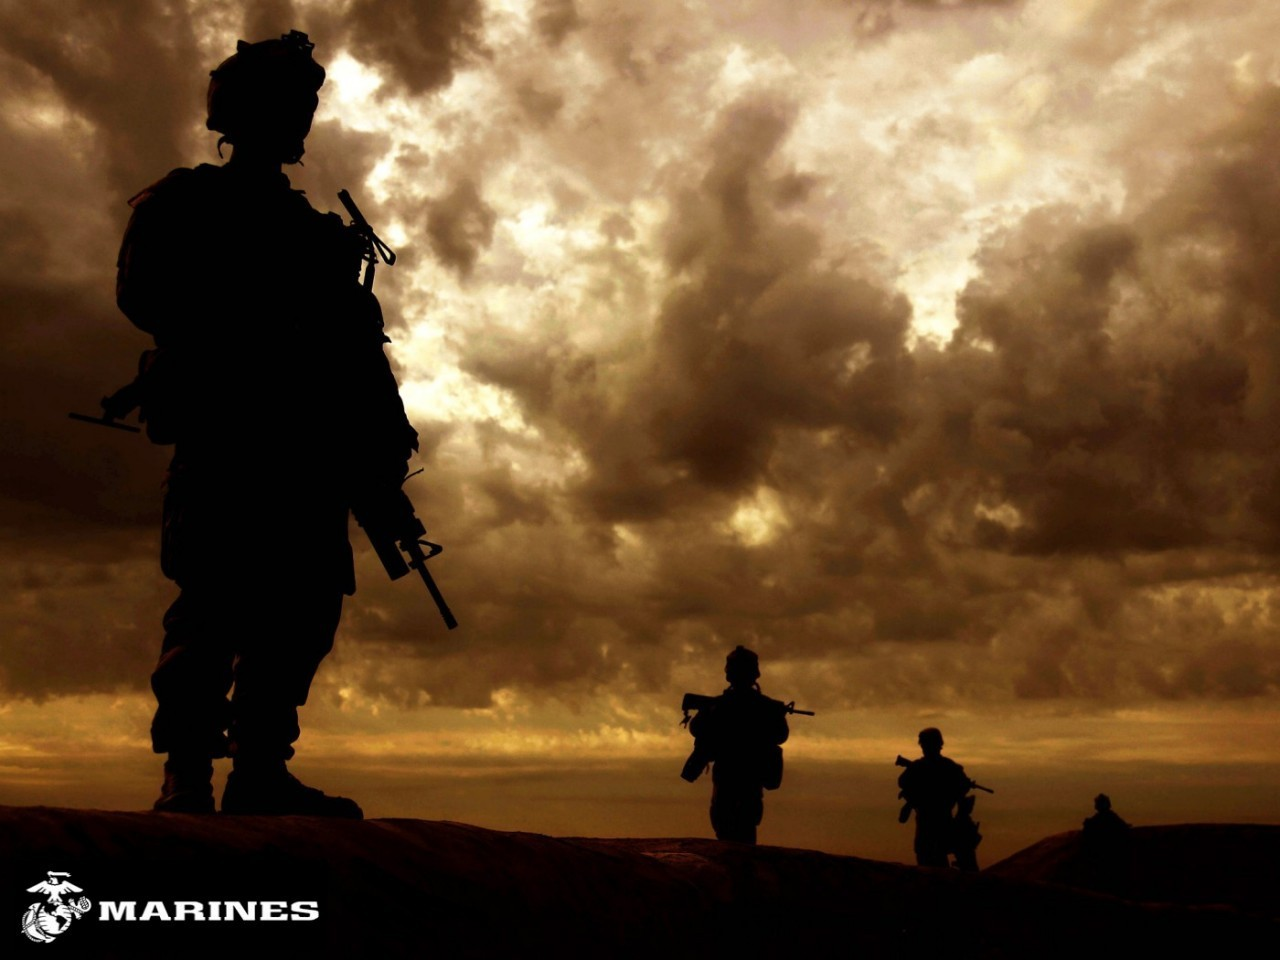 Cool Military Wallpapers   Wallpaper HD Base 1280x960